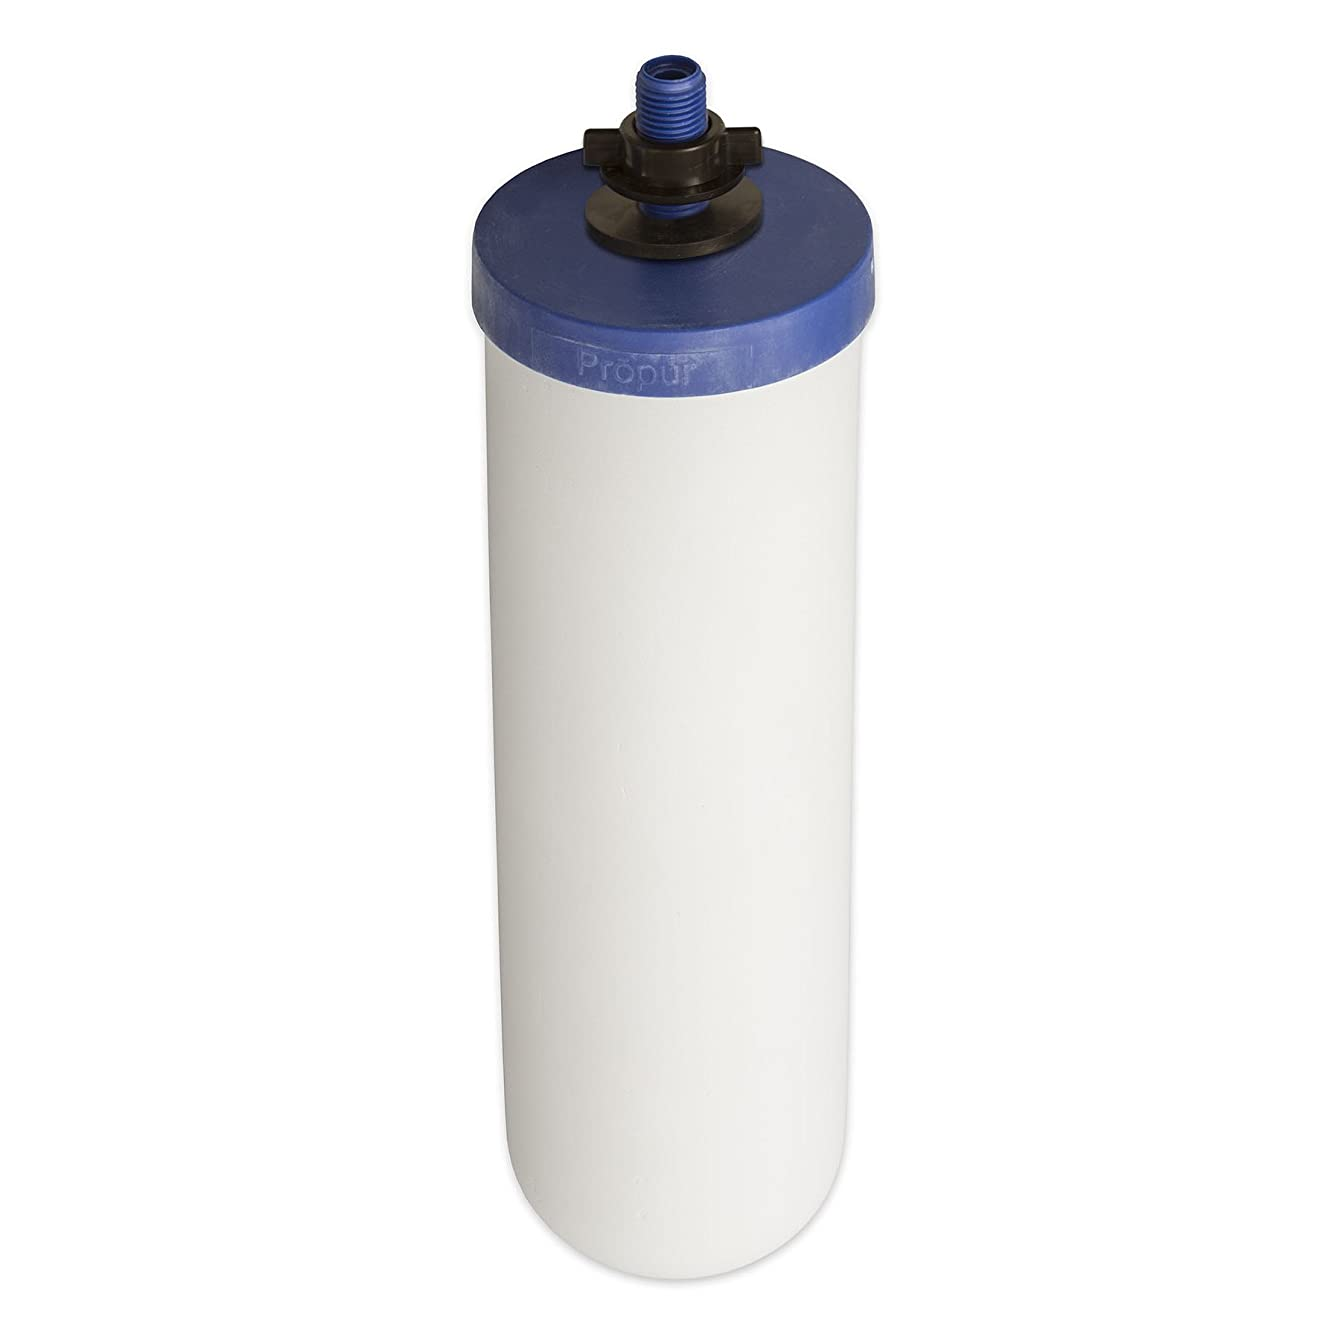 ProPur - Best ProOne 7-inch G2.0 Home Water/ Flouride Filter Elements / Filtration System (Set of Two)